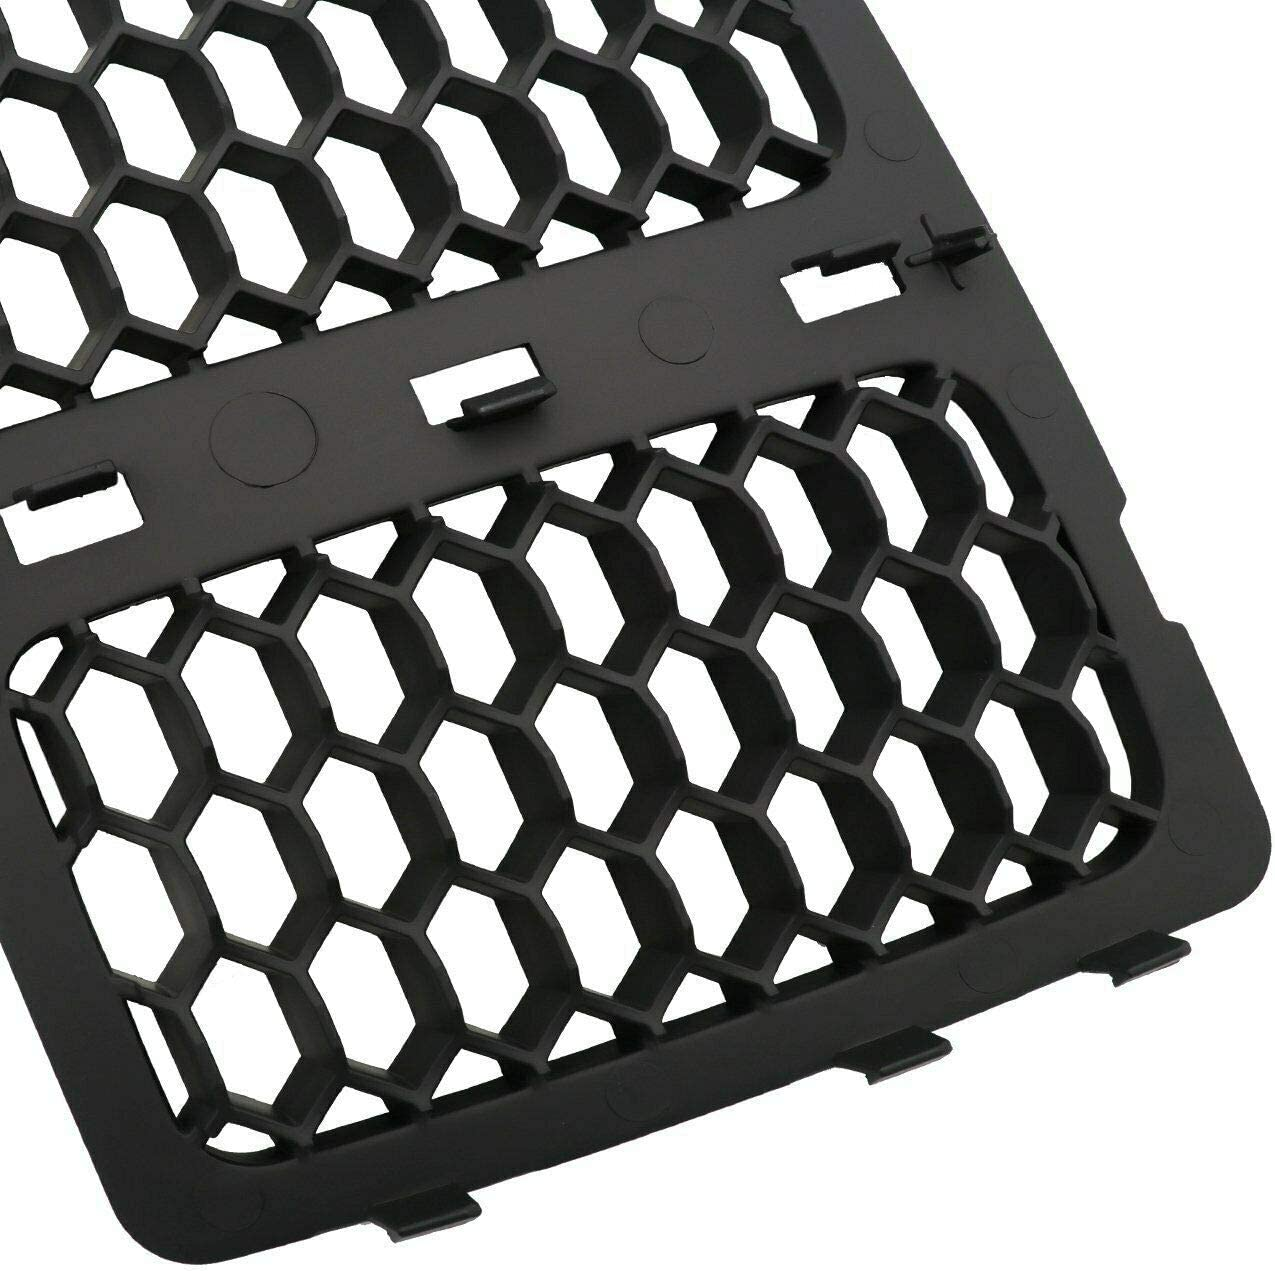 NO7RUBAN Fits 2014-2016 for Jeep Grand Cherokee Black Mesh Grille Insert Kit Front Grill Cover